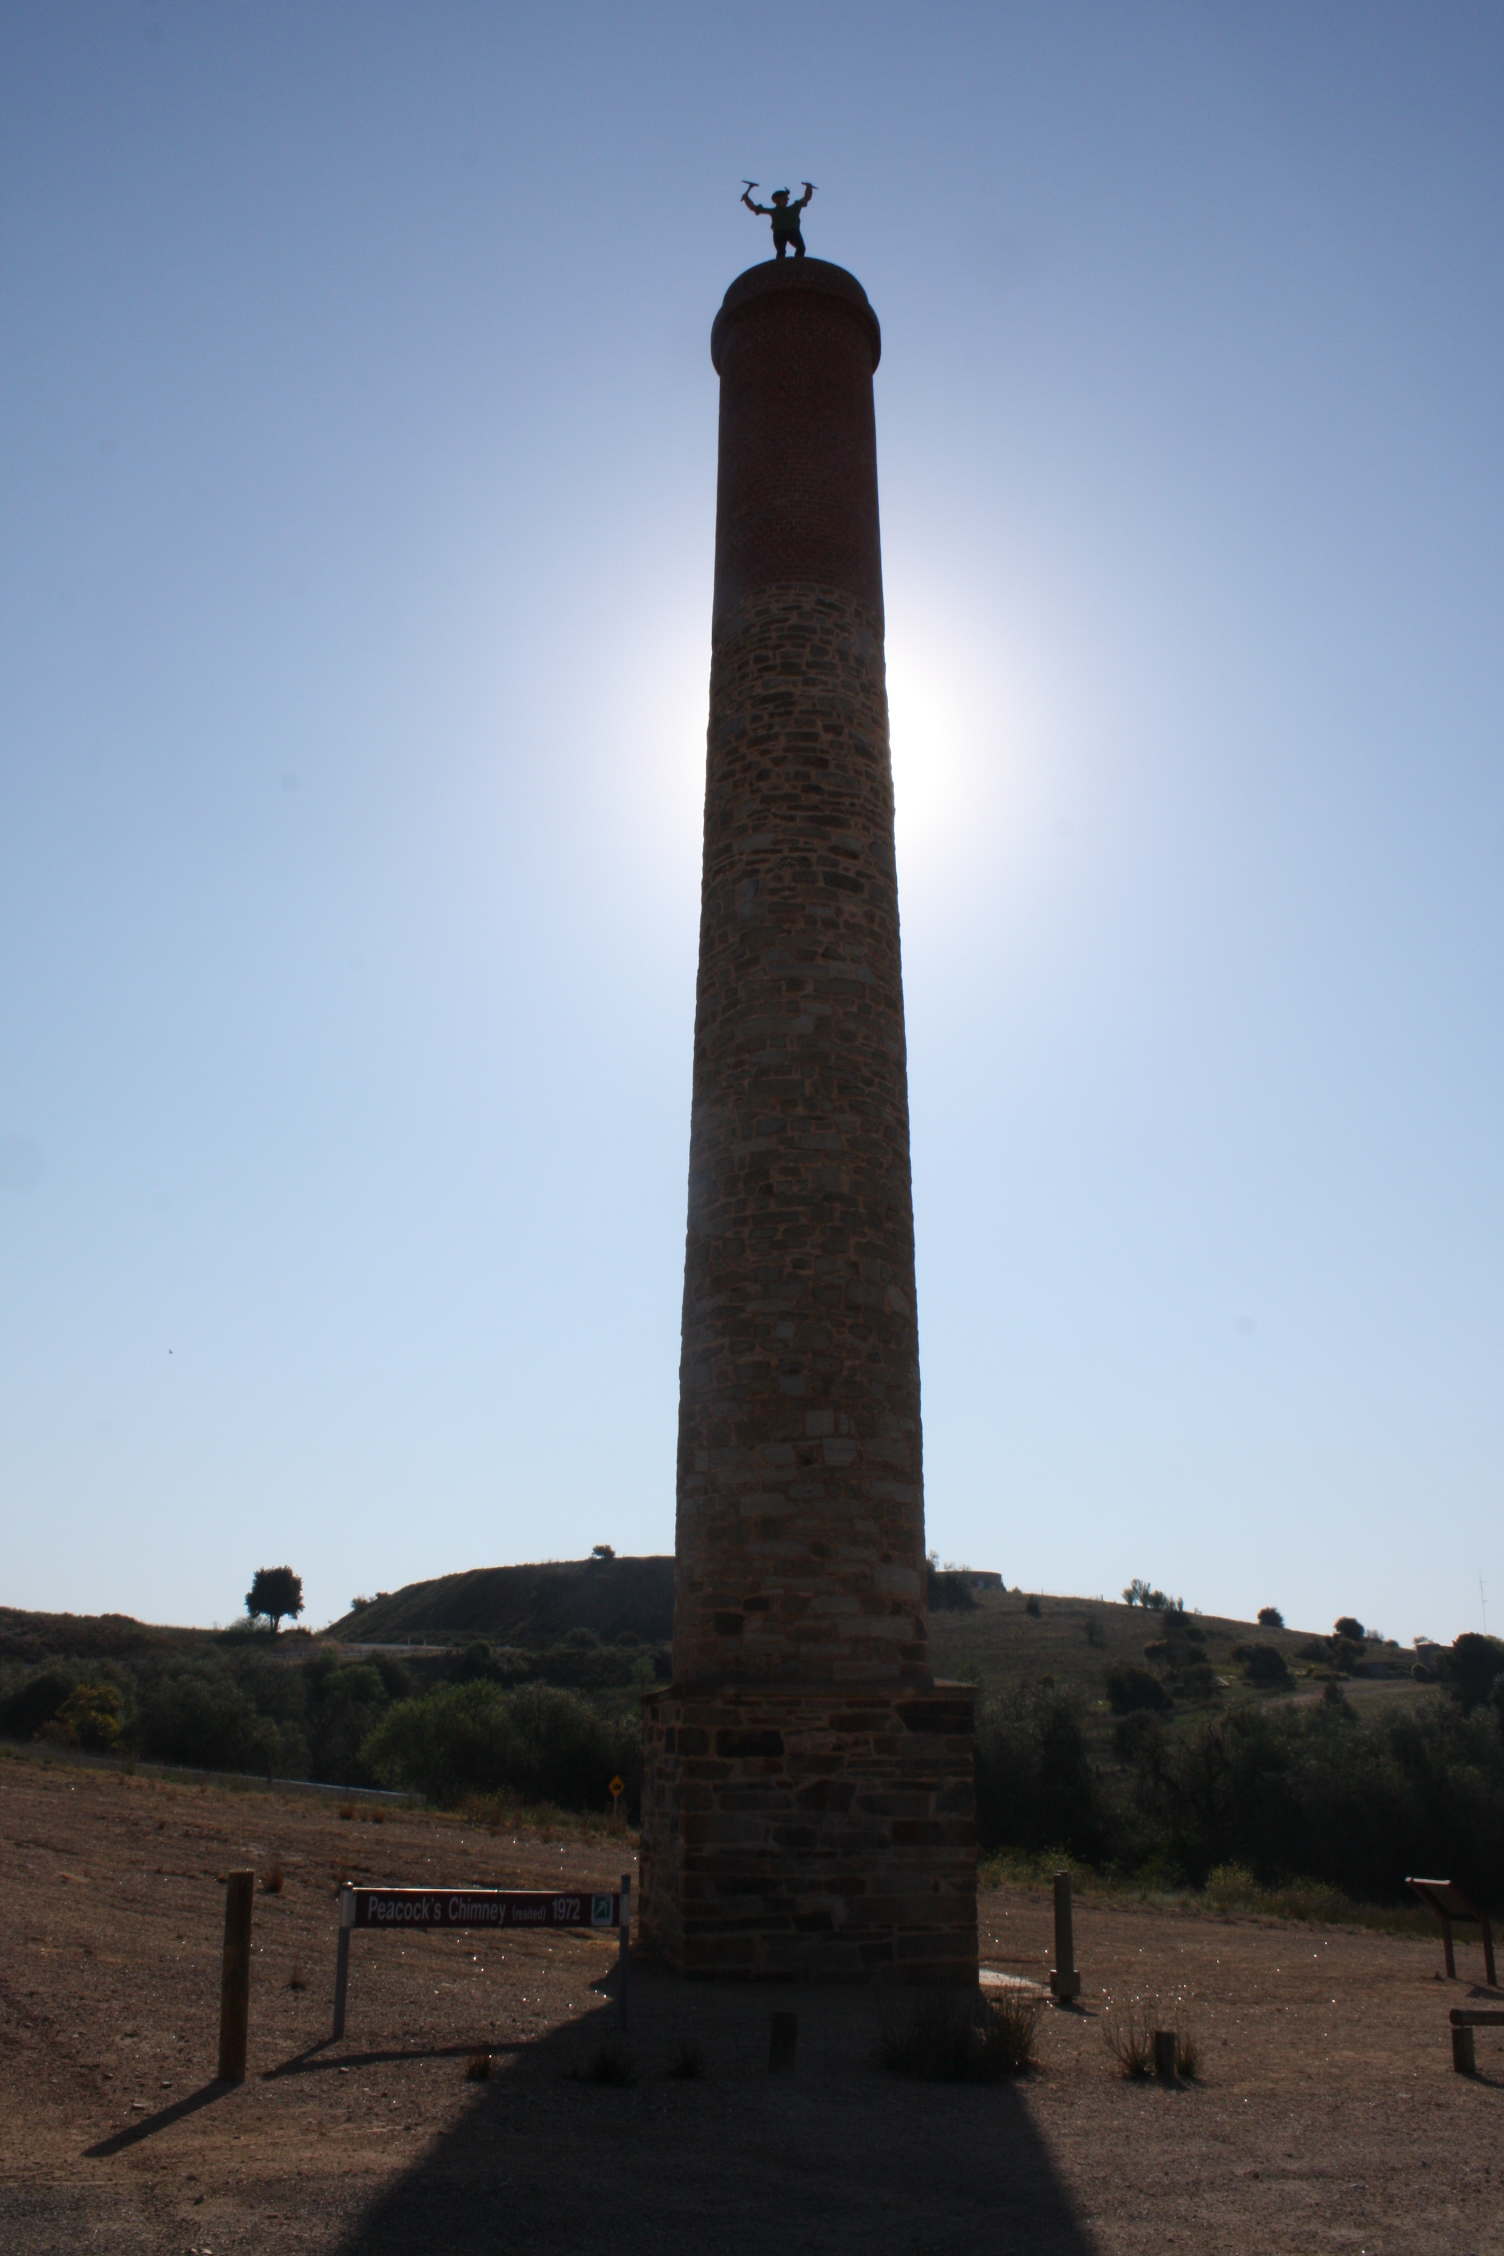 Chimney at Burra